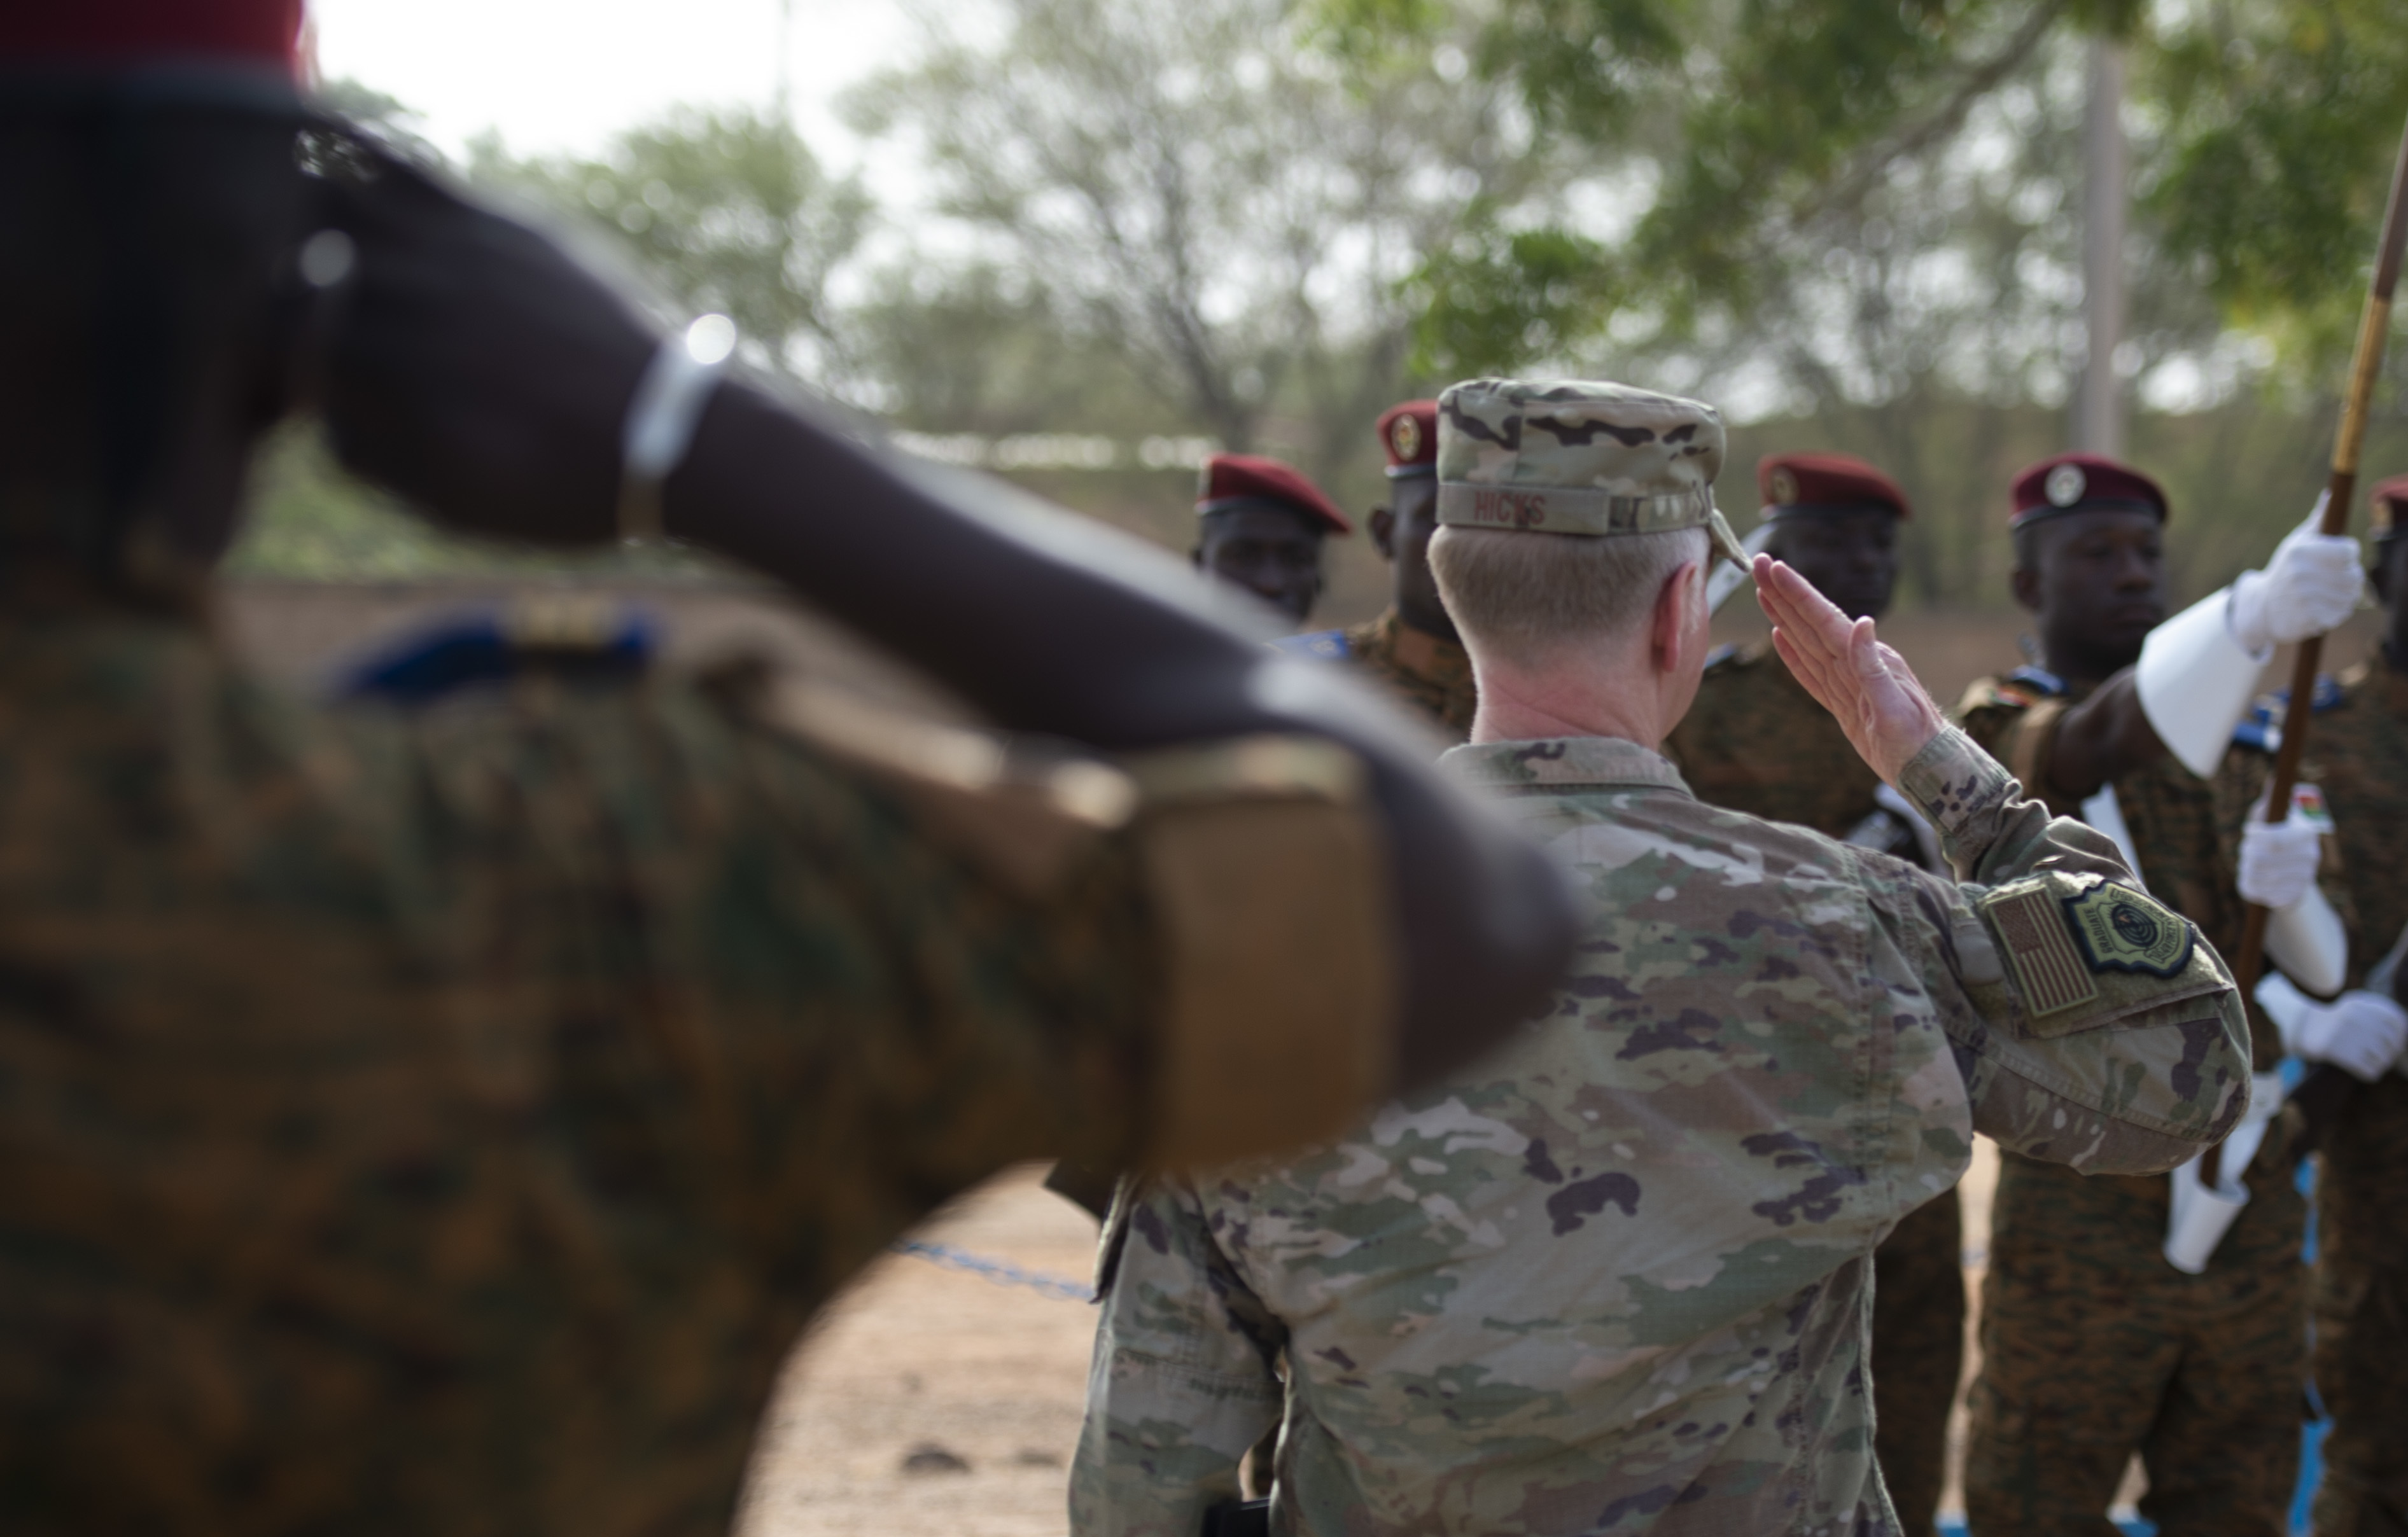 U.S. Air Force Maj. Gen. Mark Hicks, Commander, Special Operations Command Africa, renders honors during a pass and review portion of the opening ceremony to Flintlock 2019. Approximately 2,000 service members from more than 30 African and western partner nations are participating in Flintlock 2019 at multiple locations in Burkina Faso and a key outstation in Mauritania. (U.S. Navy photo by MC2 (SW/AW) Evan Parker / released)